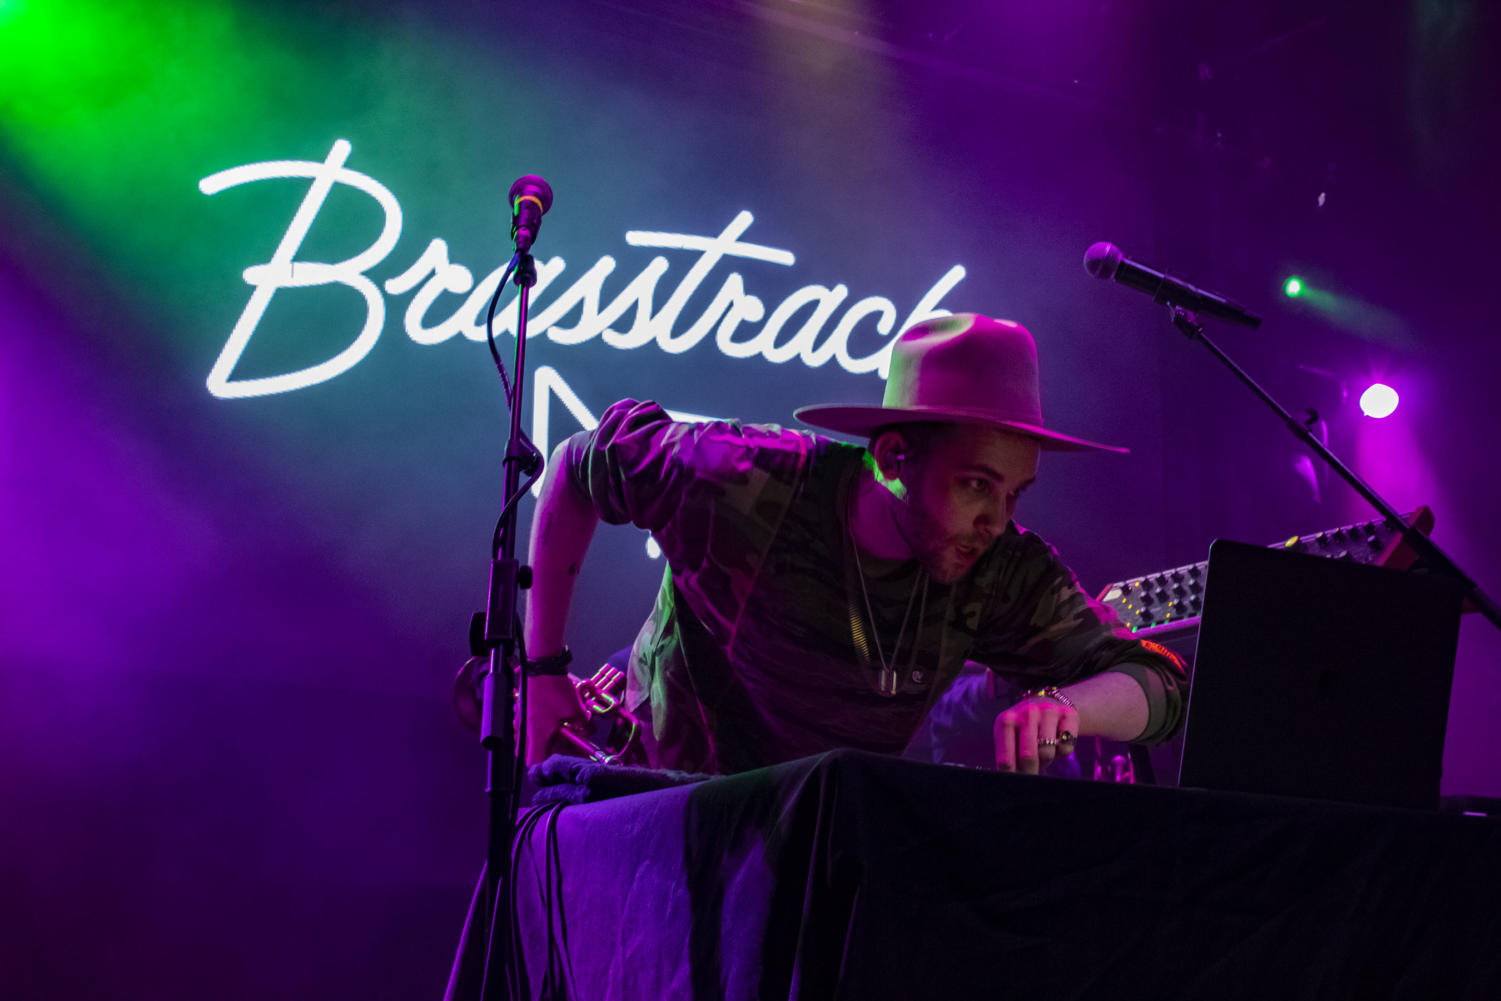 Ivan Jackson takes a break from trumpeting during the show. Brasstracks brought the bands'